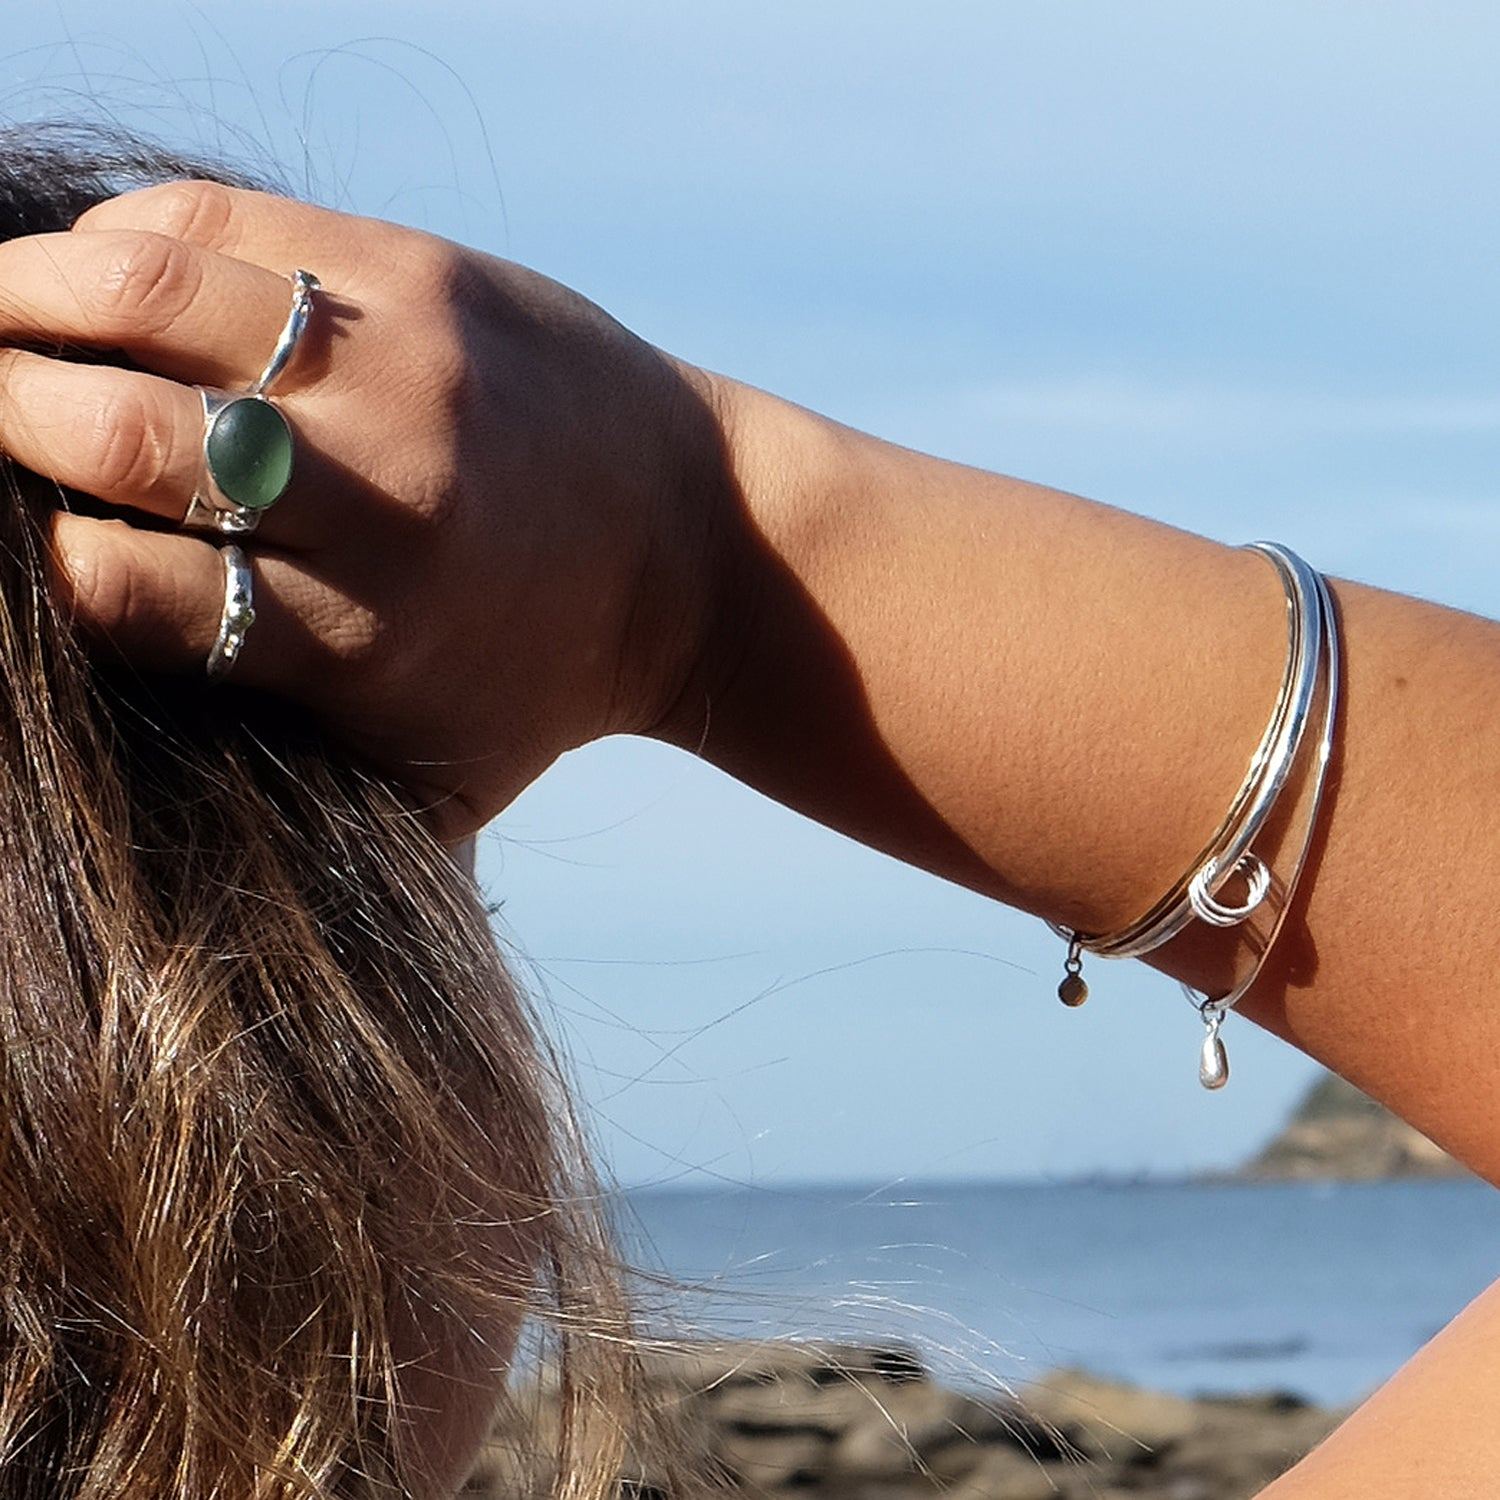 Silver Bangle with Seaglass Charm - kriket broadhurst jewellery on model